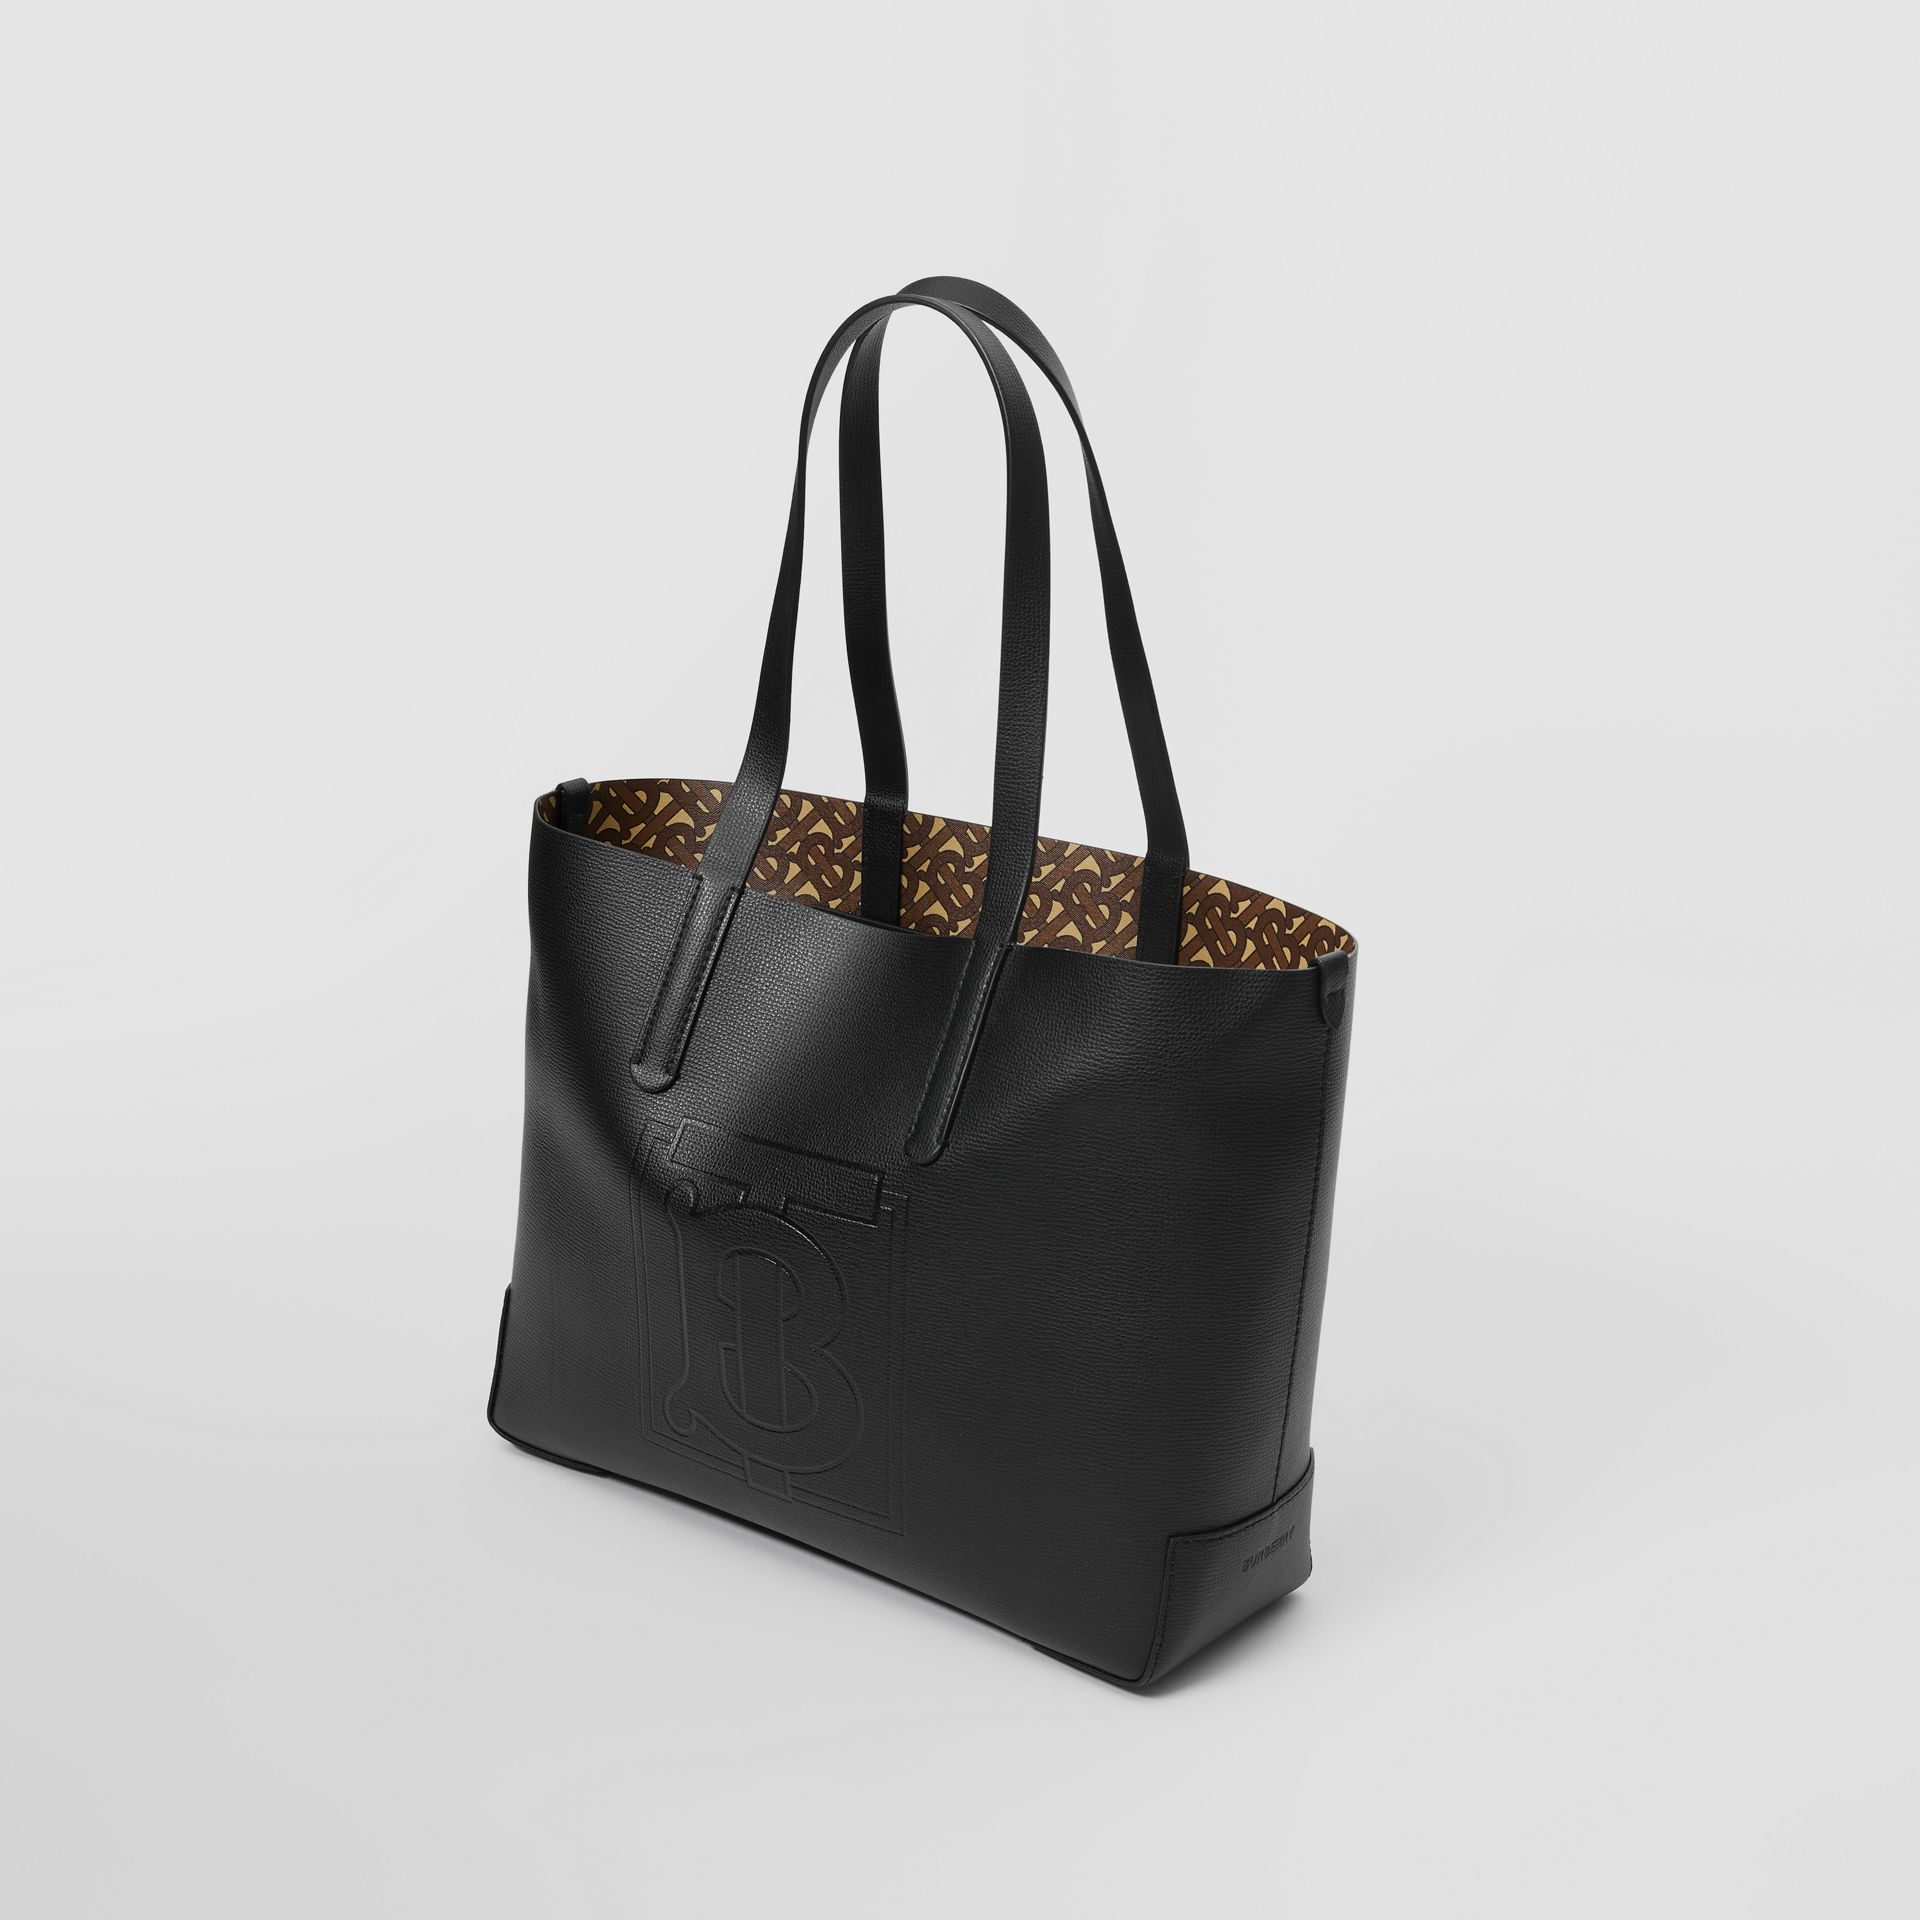 Embossed Monogram Motif Leather Tote in Black - Women | Burberry United Kingdom - gallery image 3